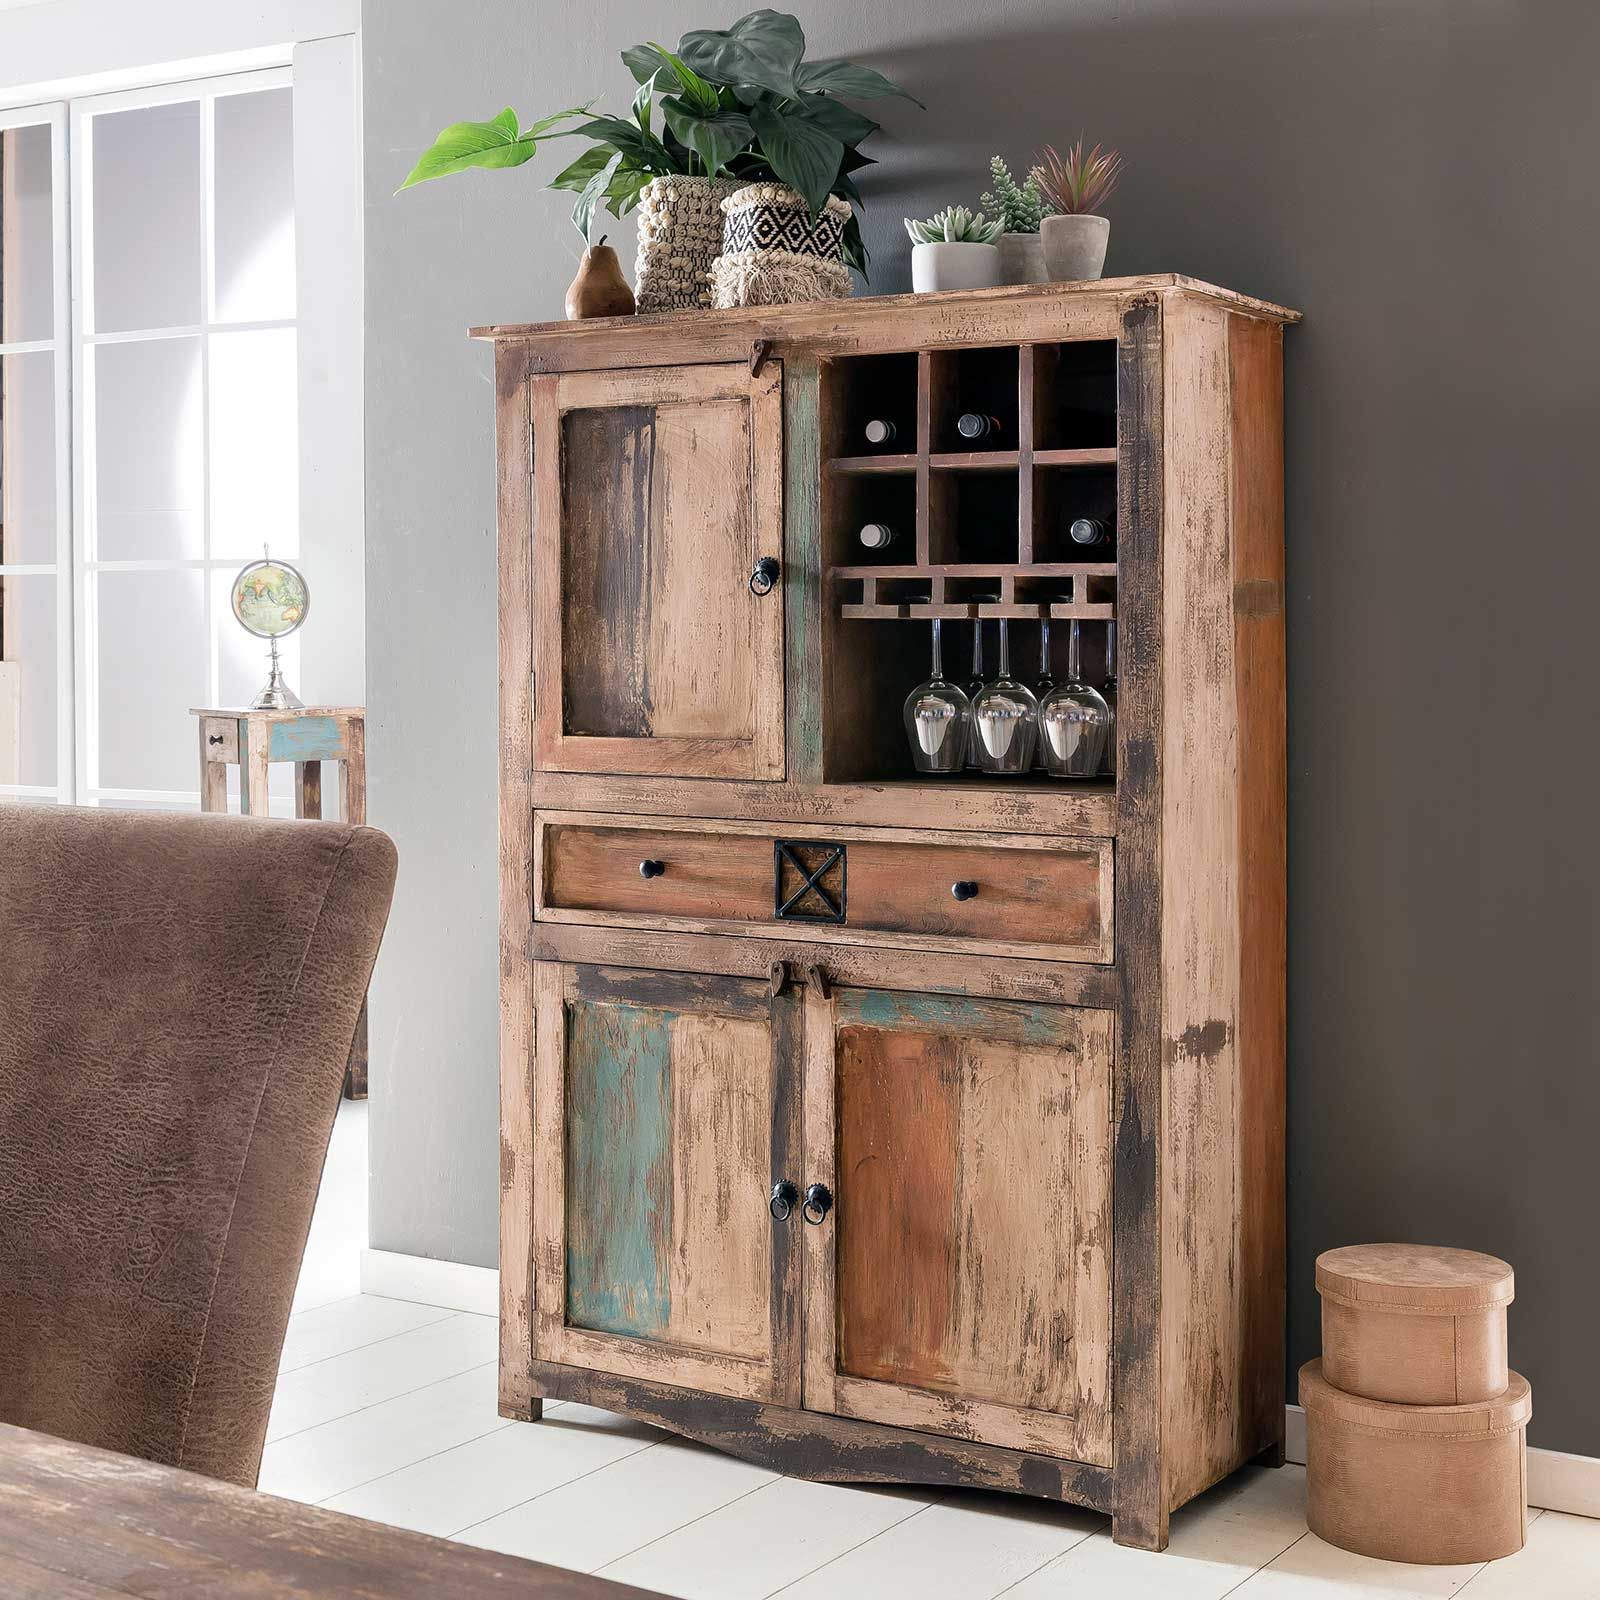 highboard largo 100cm breit aus massivholz im vintage look. Black Bedroom Furniture Sets. Home Design Ideas